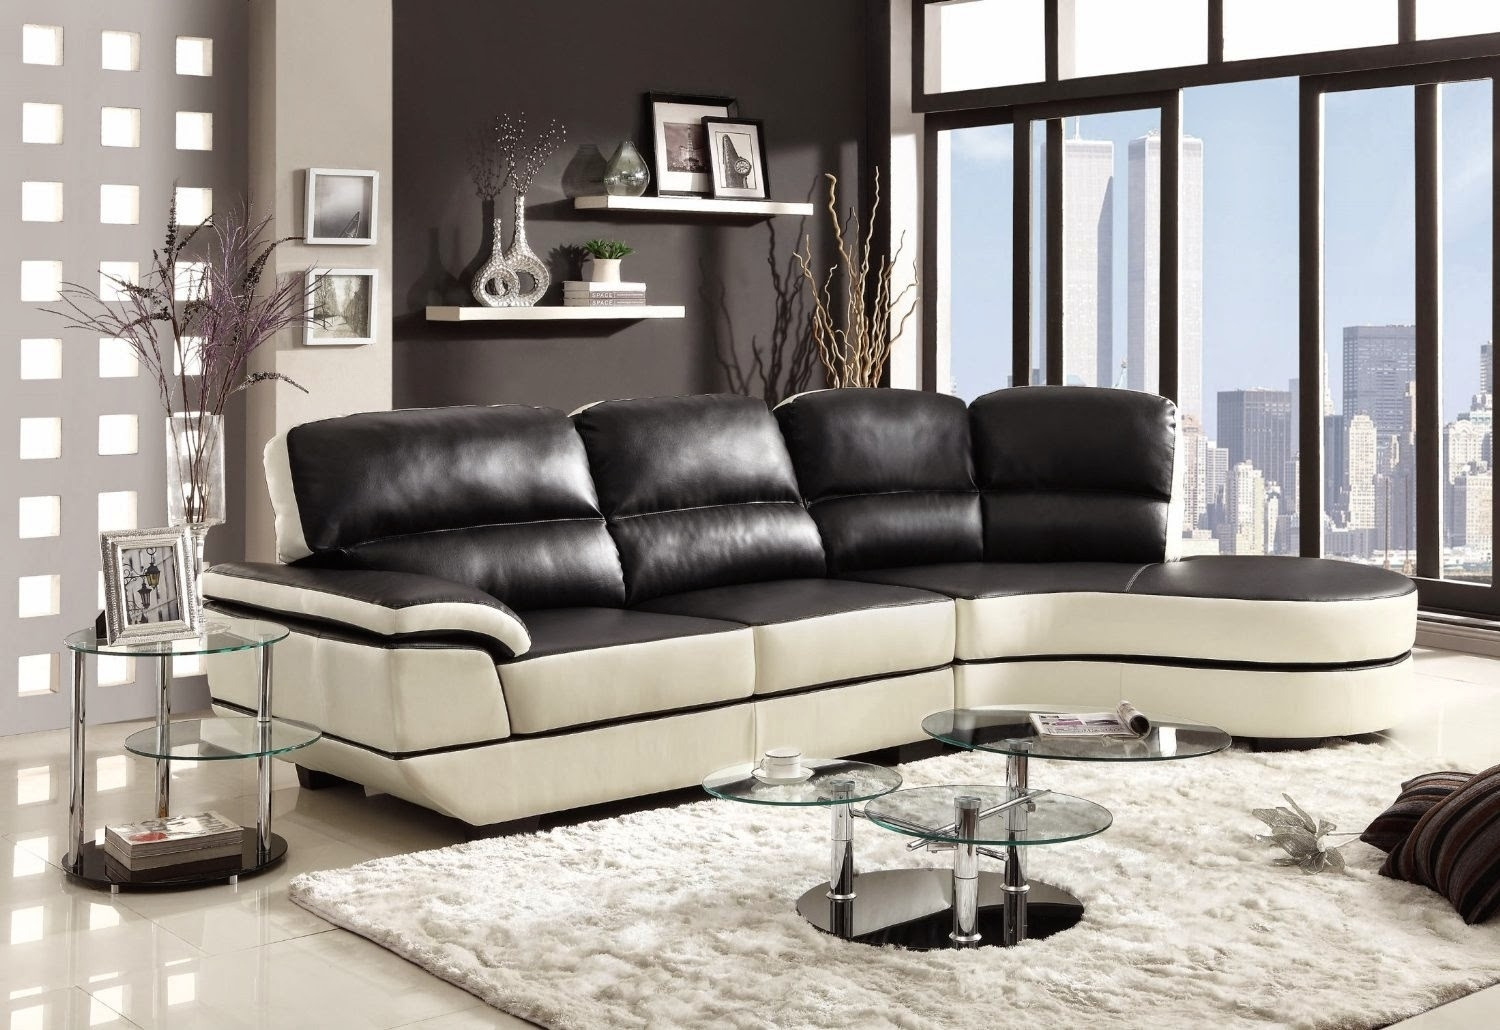 Furniture : Sectional Sofa Ebay Corner Couch 6 Seater 4 Recliner Intended For 100X80 Sectional Sofas (View 7 of 10)